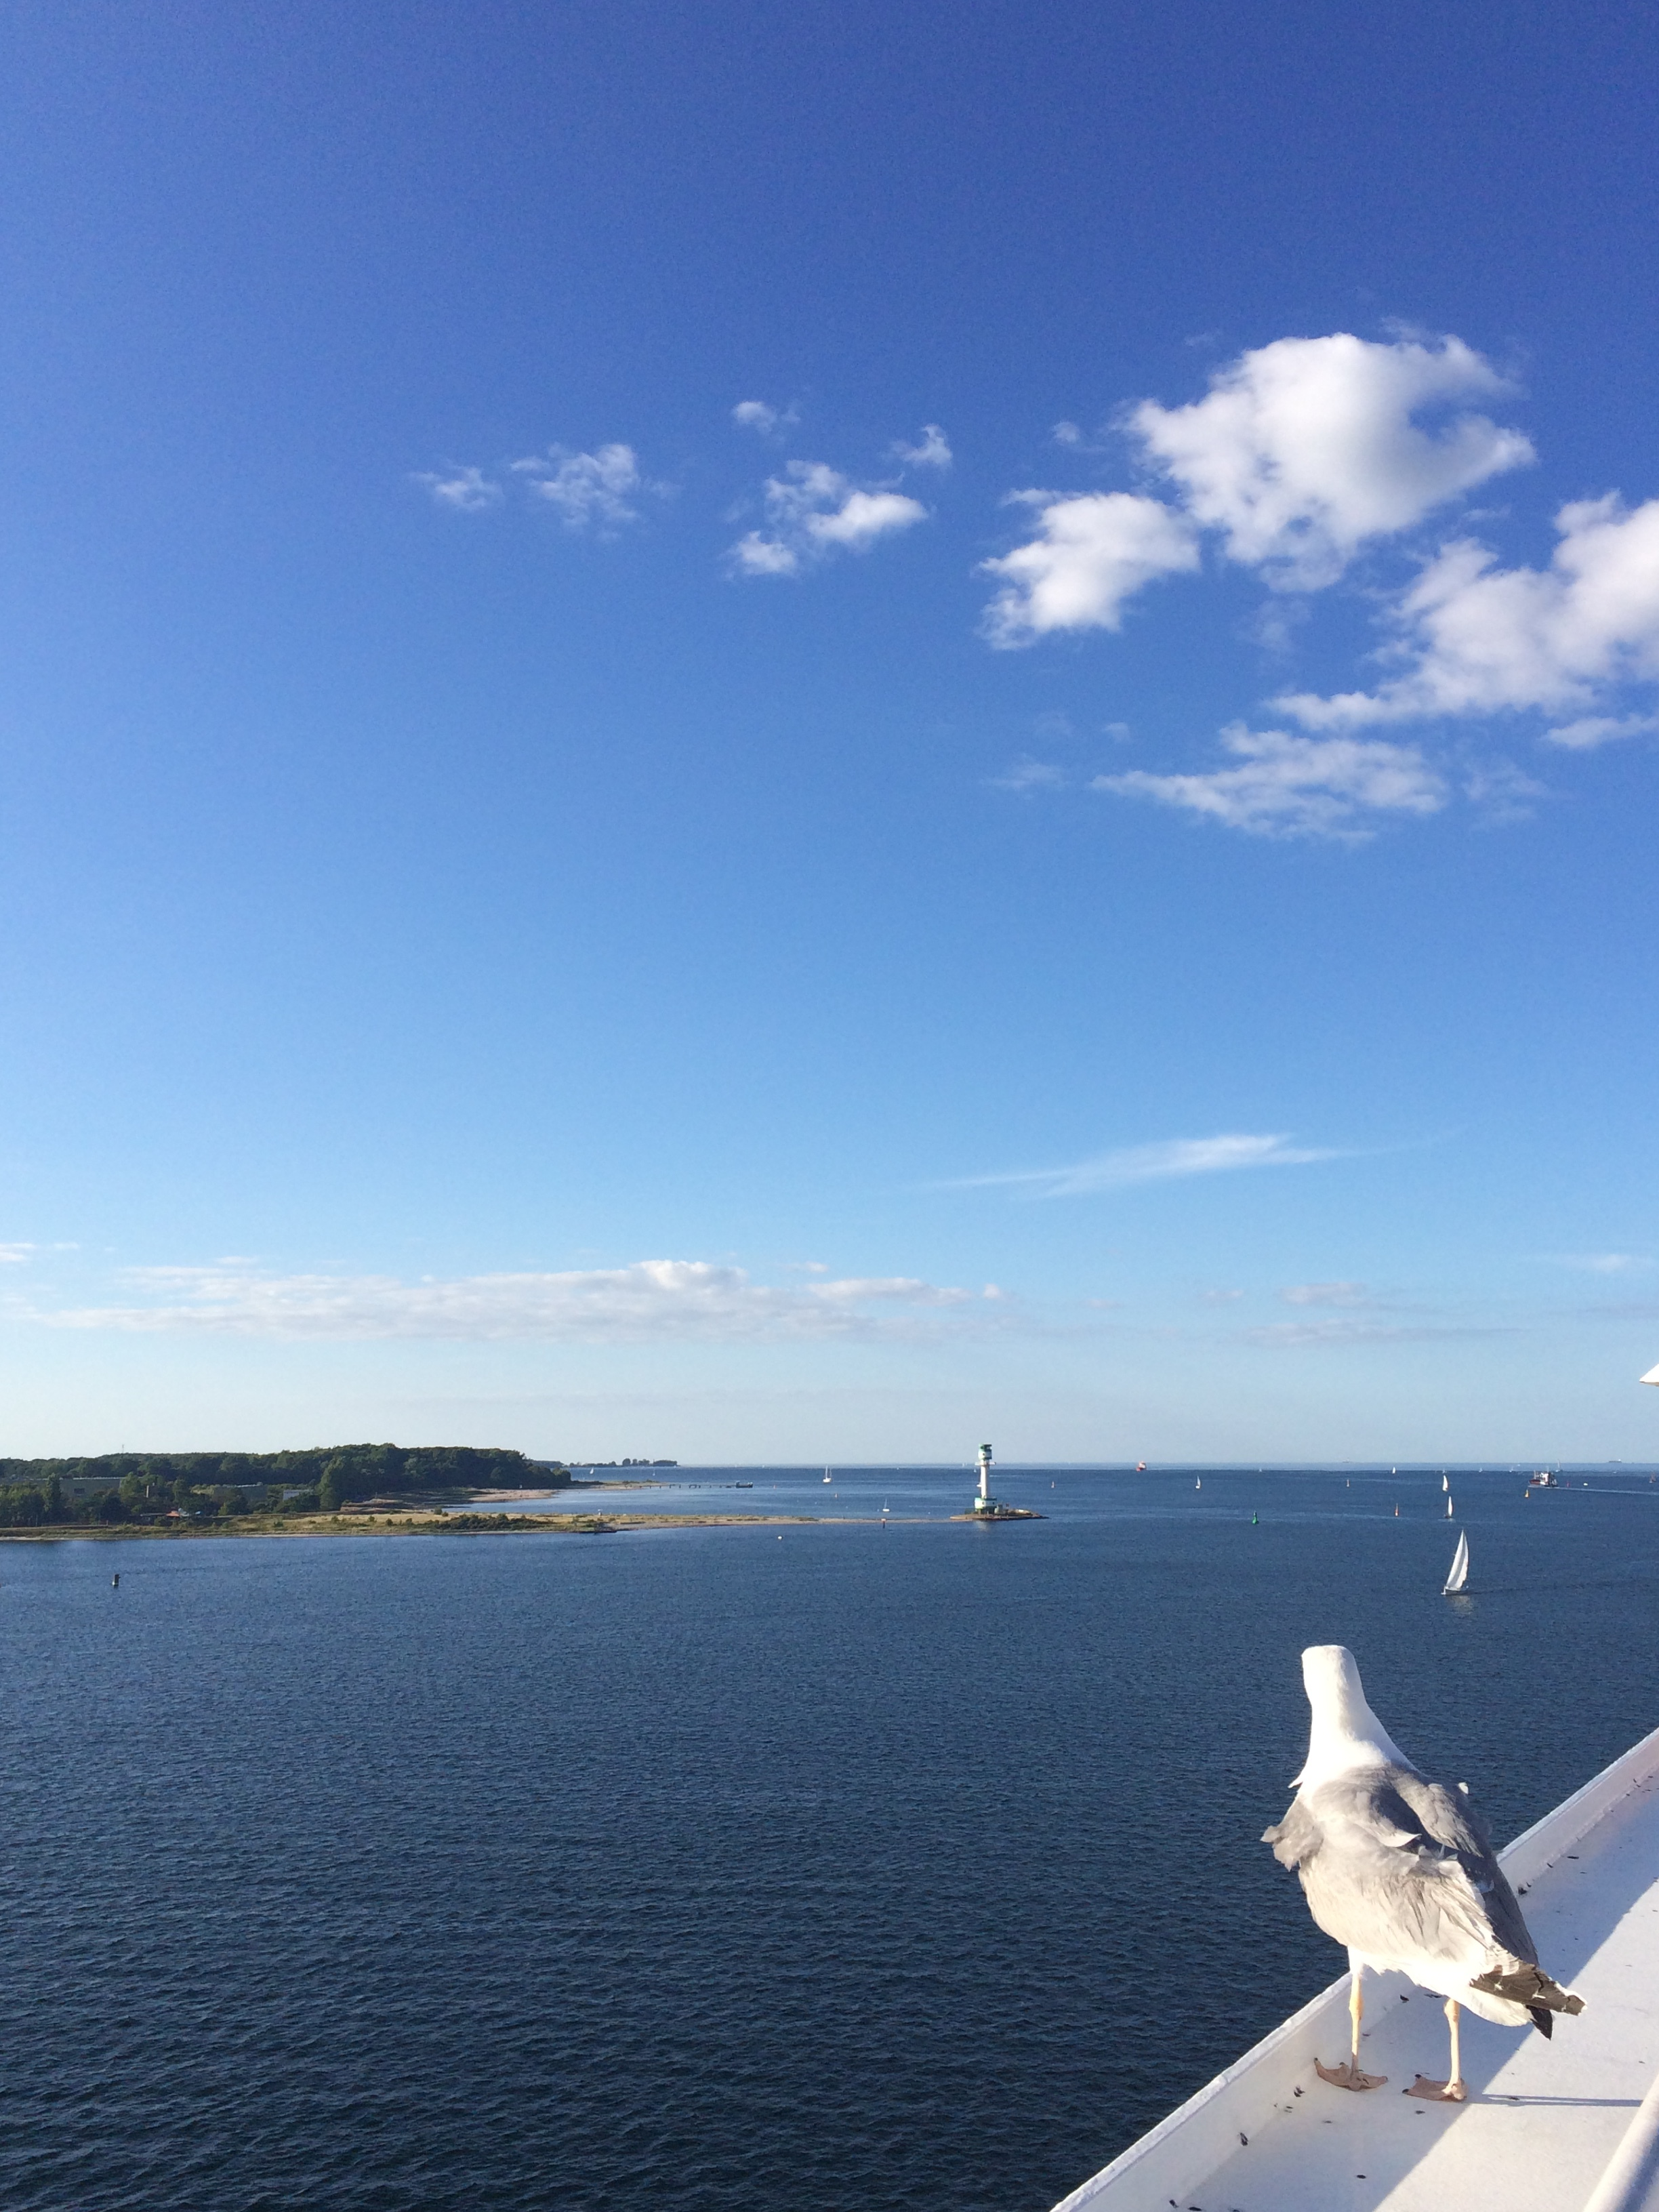 A seagull enjoying the view of the Kiel Förde on the Kiel-Göteborg ferry, before heading out into the open Baltic.